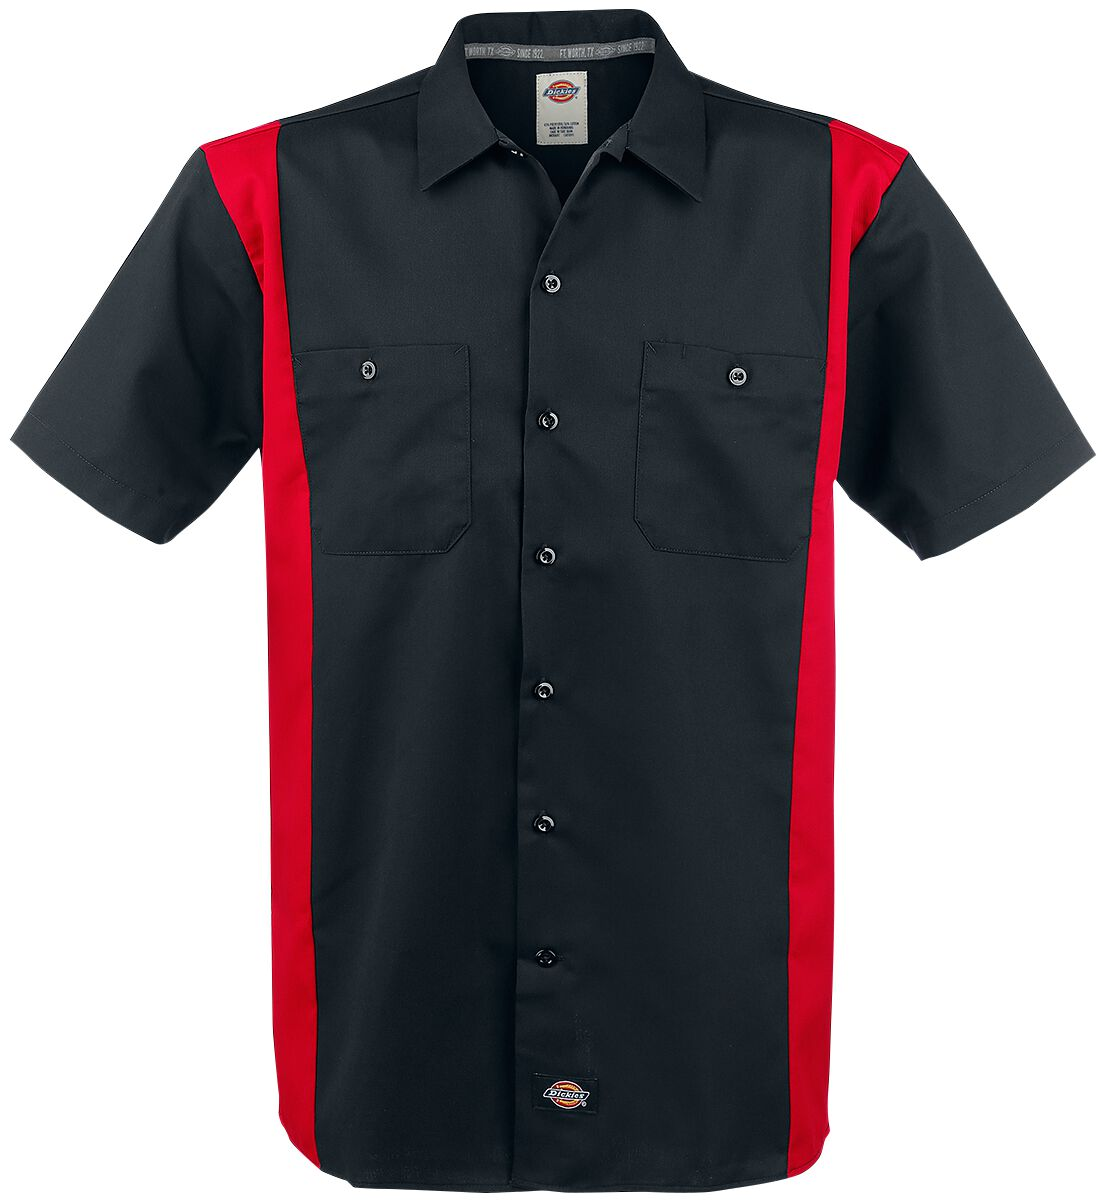 Image of   Dickies Two Tone Work Shirt Skjorte sort-rød